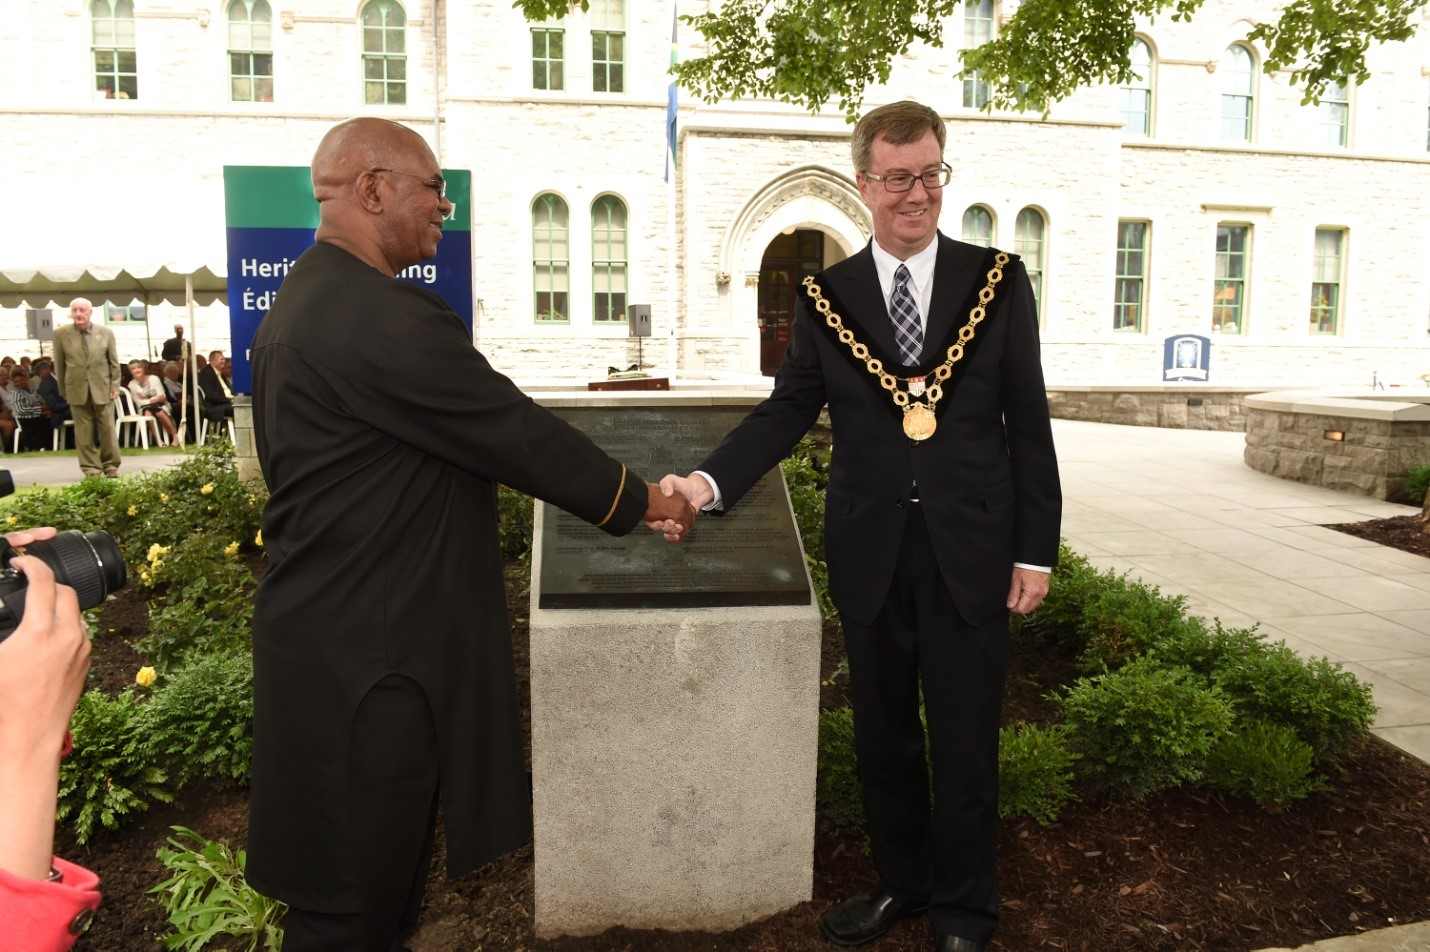 Mayor Jim Watson shaking hands with High Commissioner at Dedication Ceremony